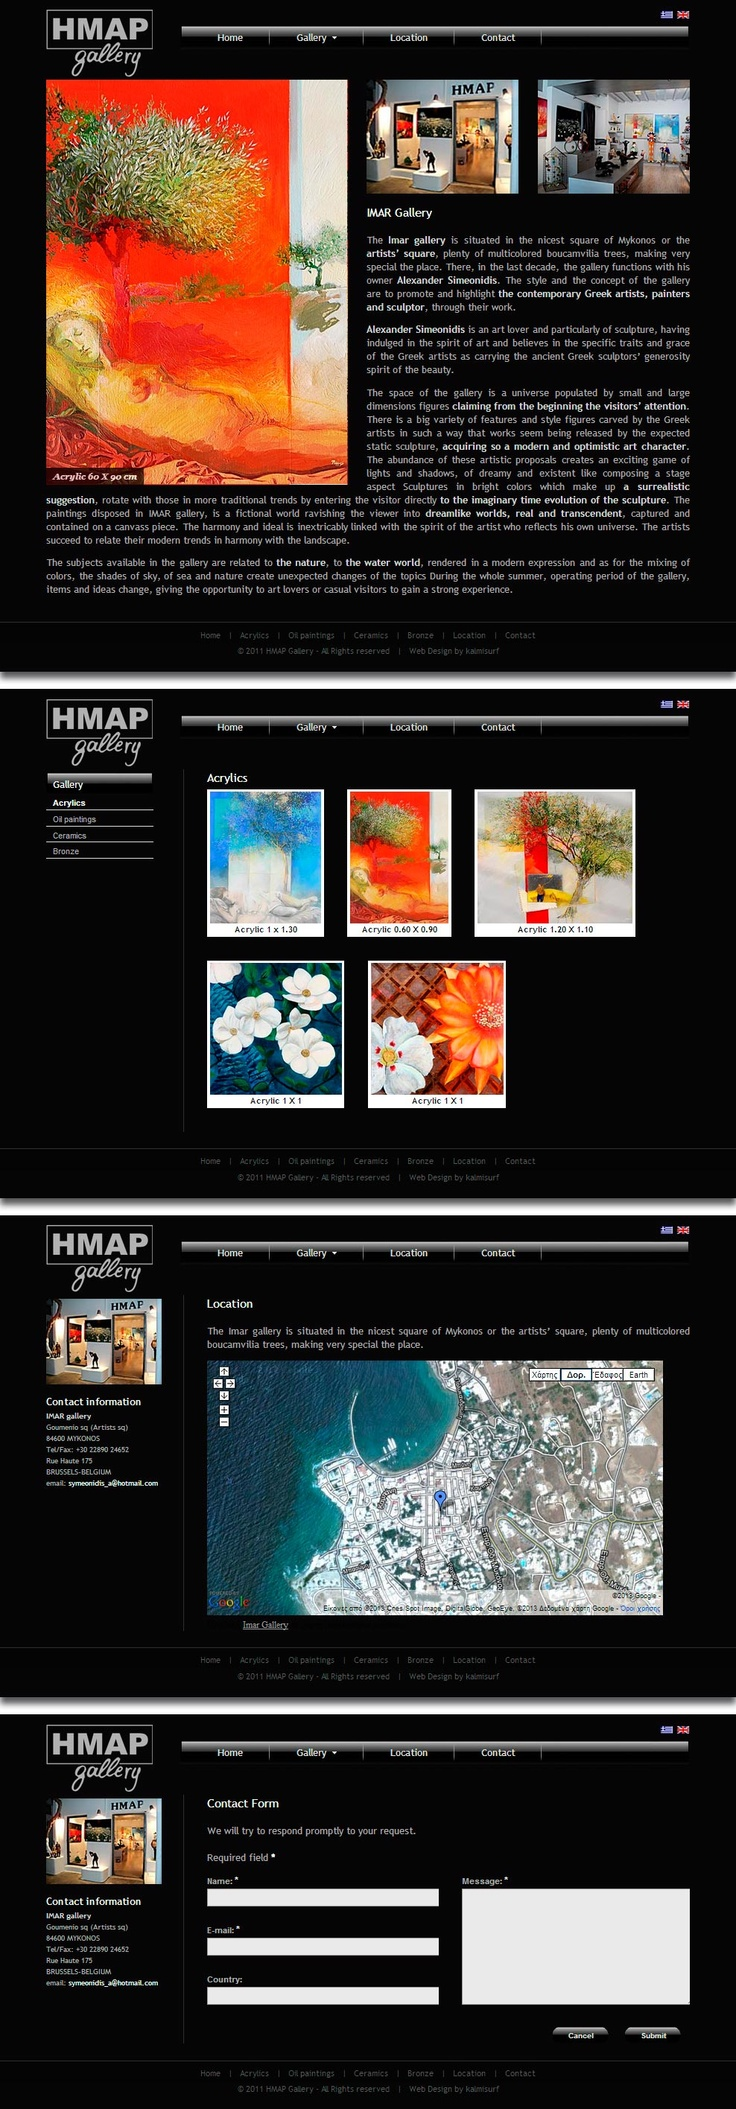 Web design & development for Imar Gallery.  Black can make it easier to convey a sense of sophistication and mystery in a design